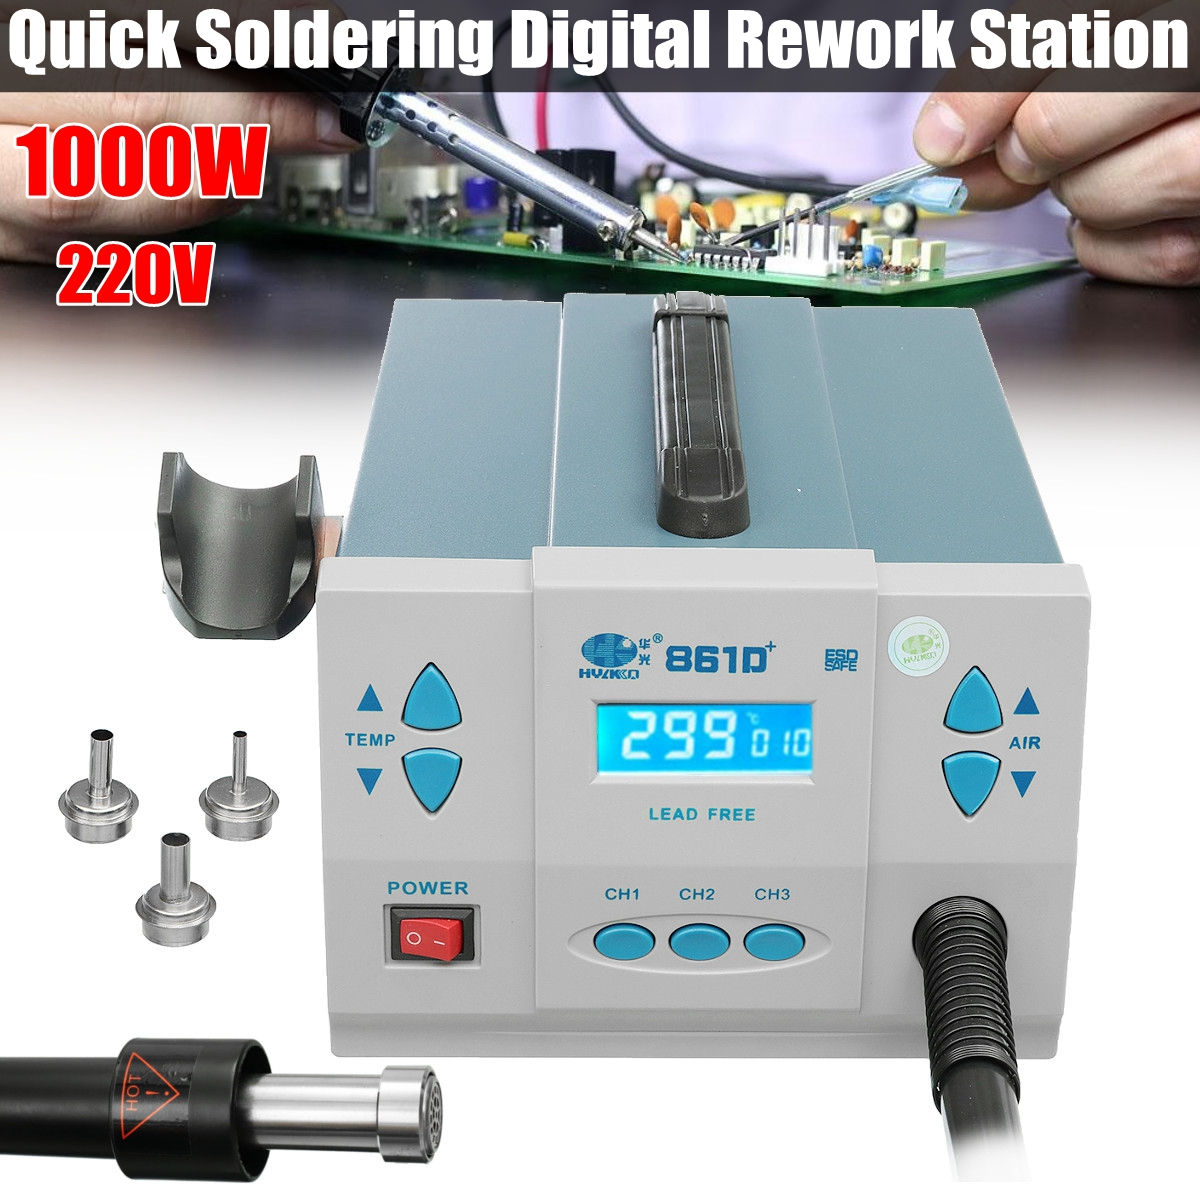 Quick Soldering 861DW+ 1000W Digital Rework Station 220V Lead-free Desoldering